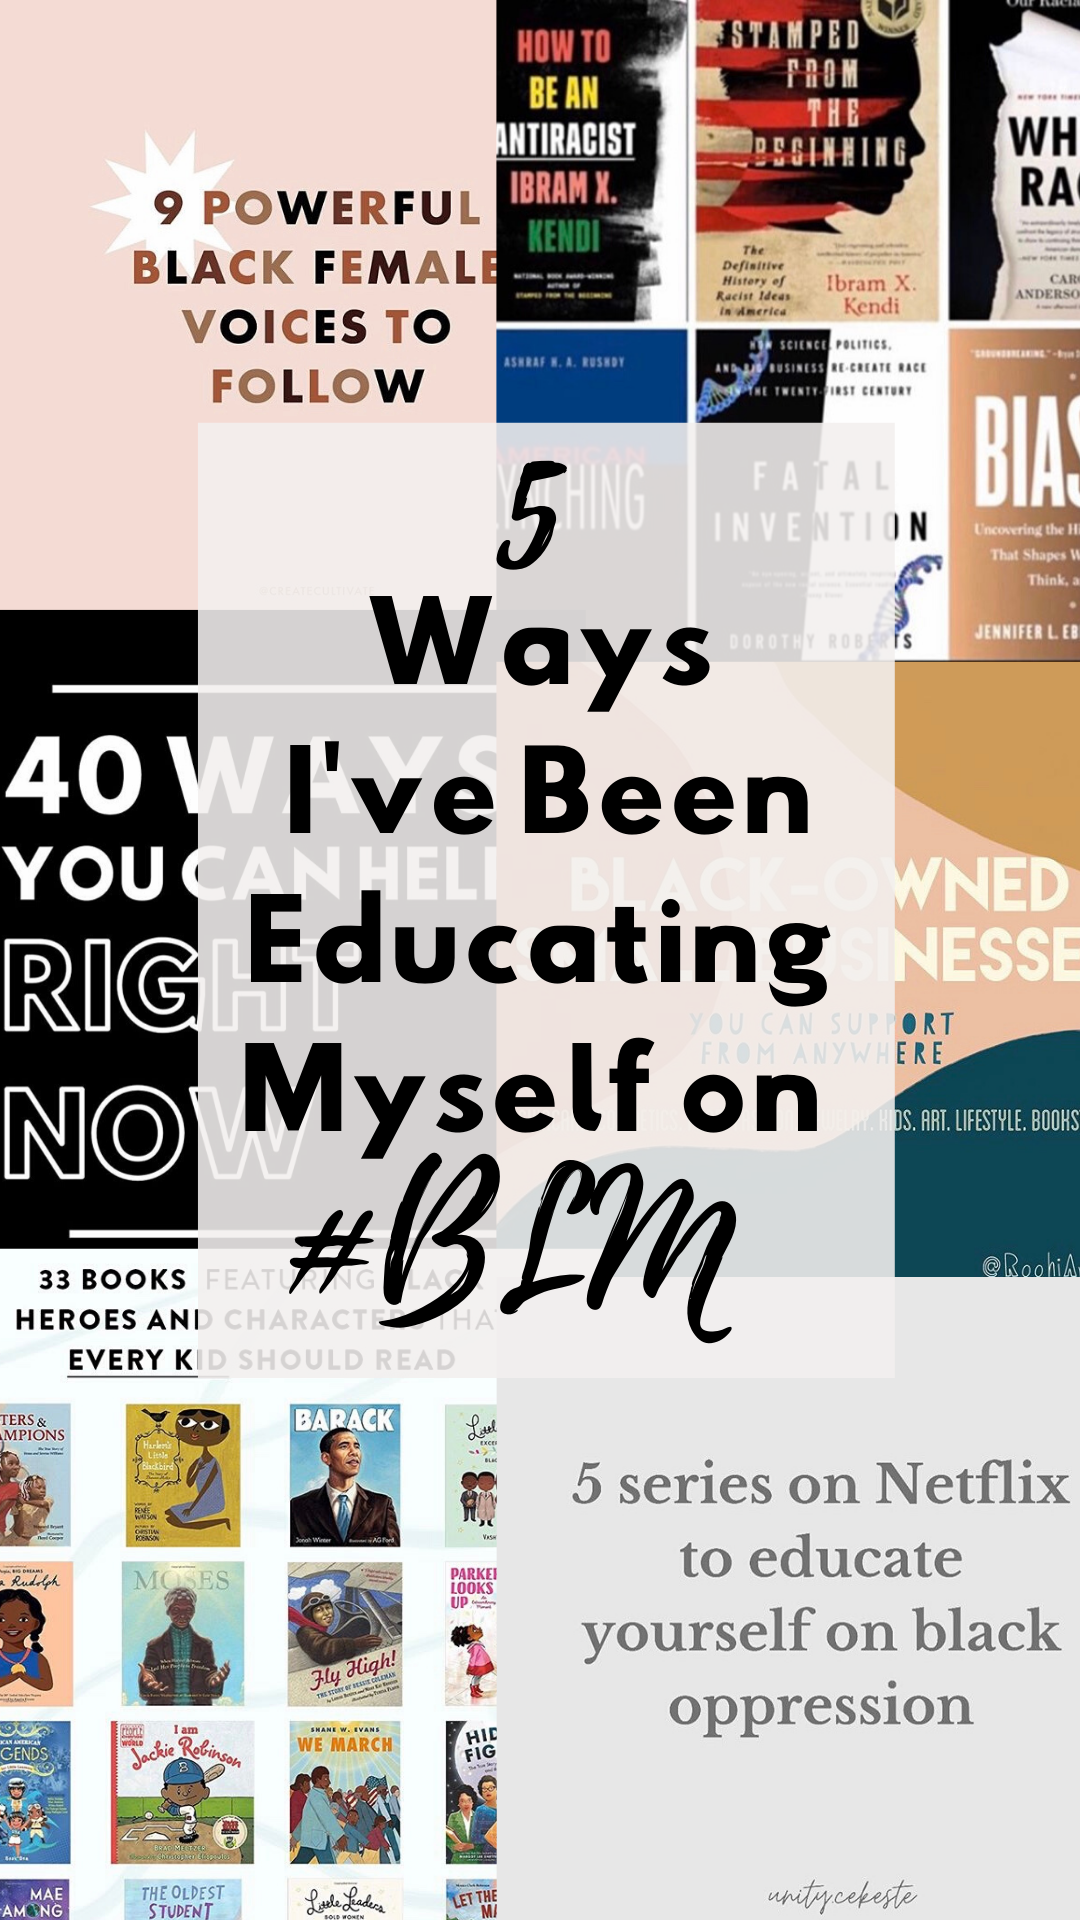 5 Ways I've Been Educating Myself on #BlackLivesMatter